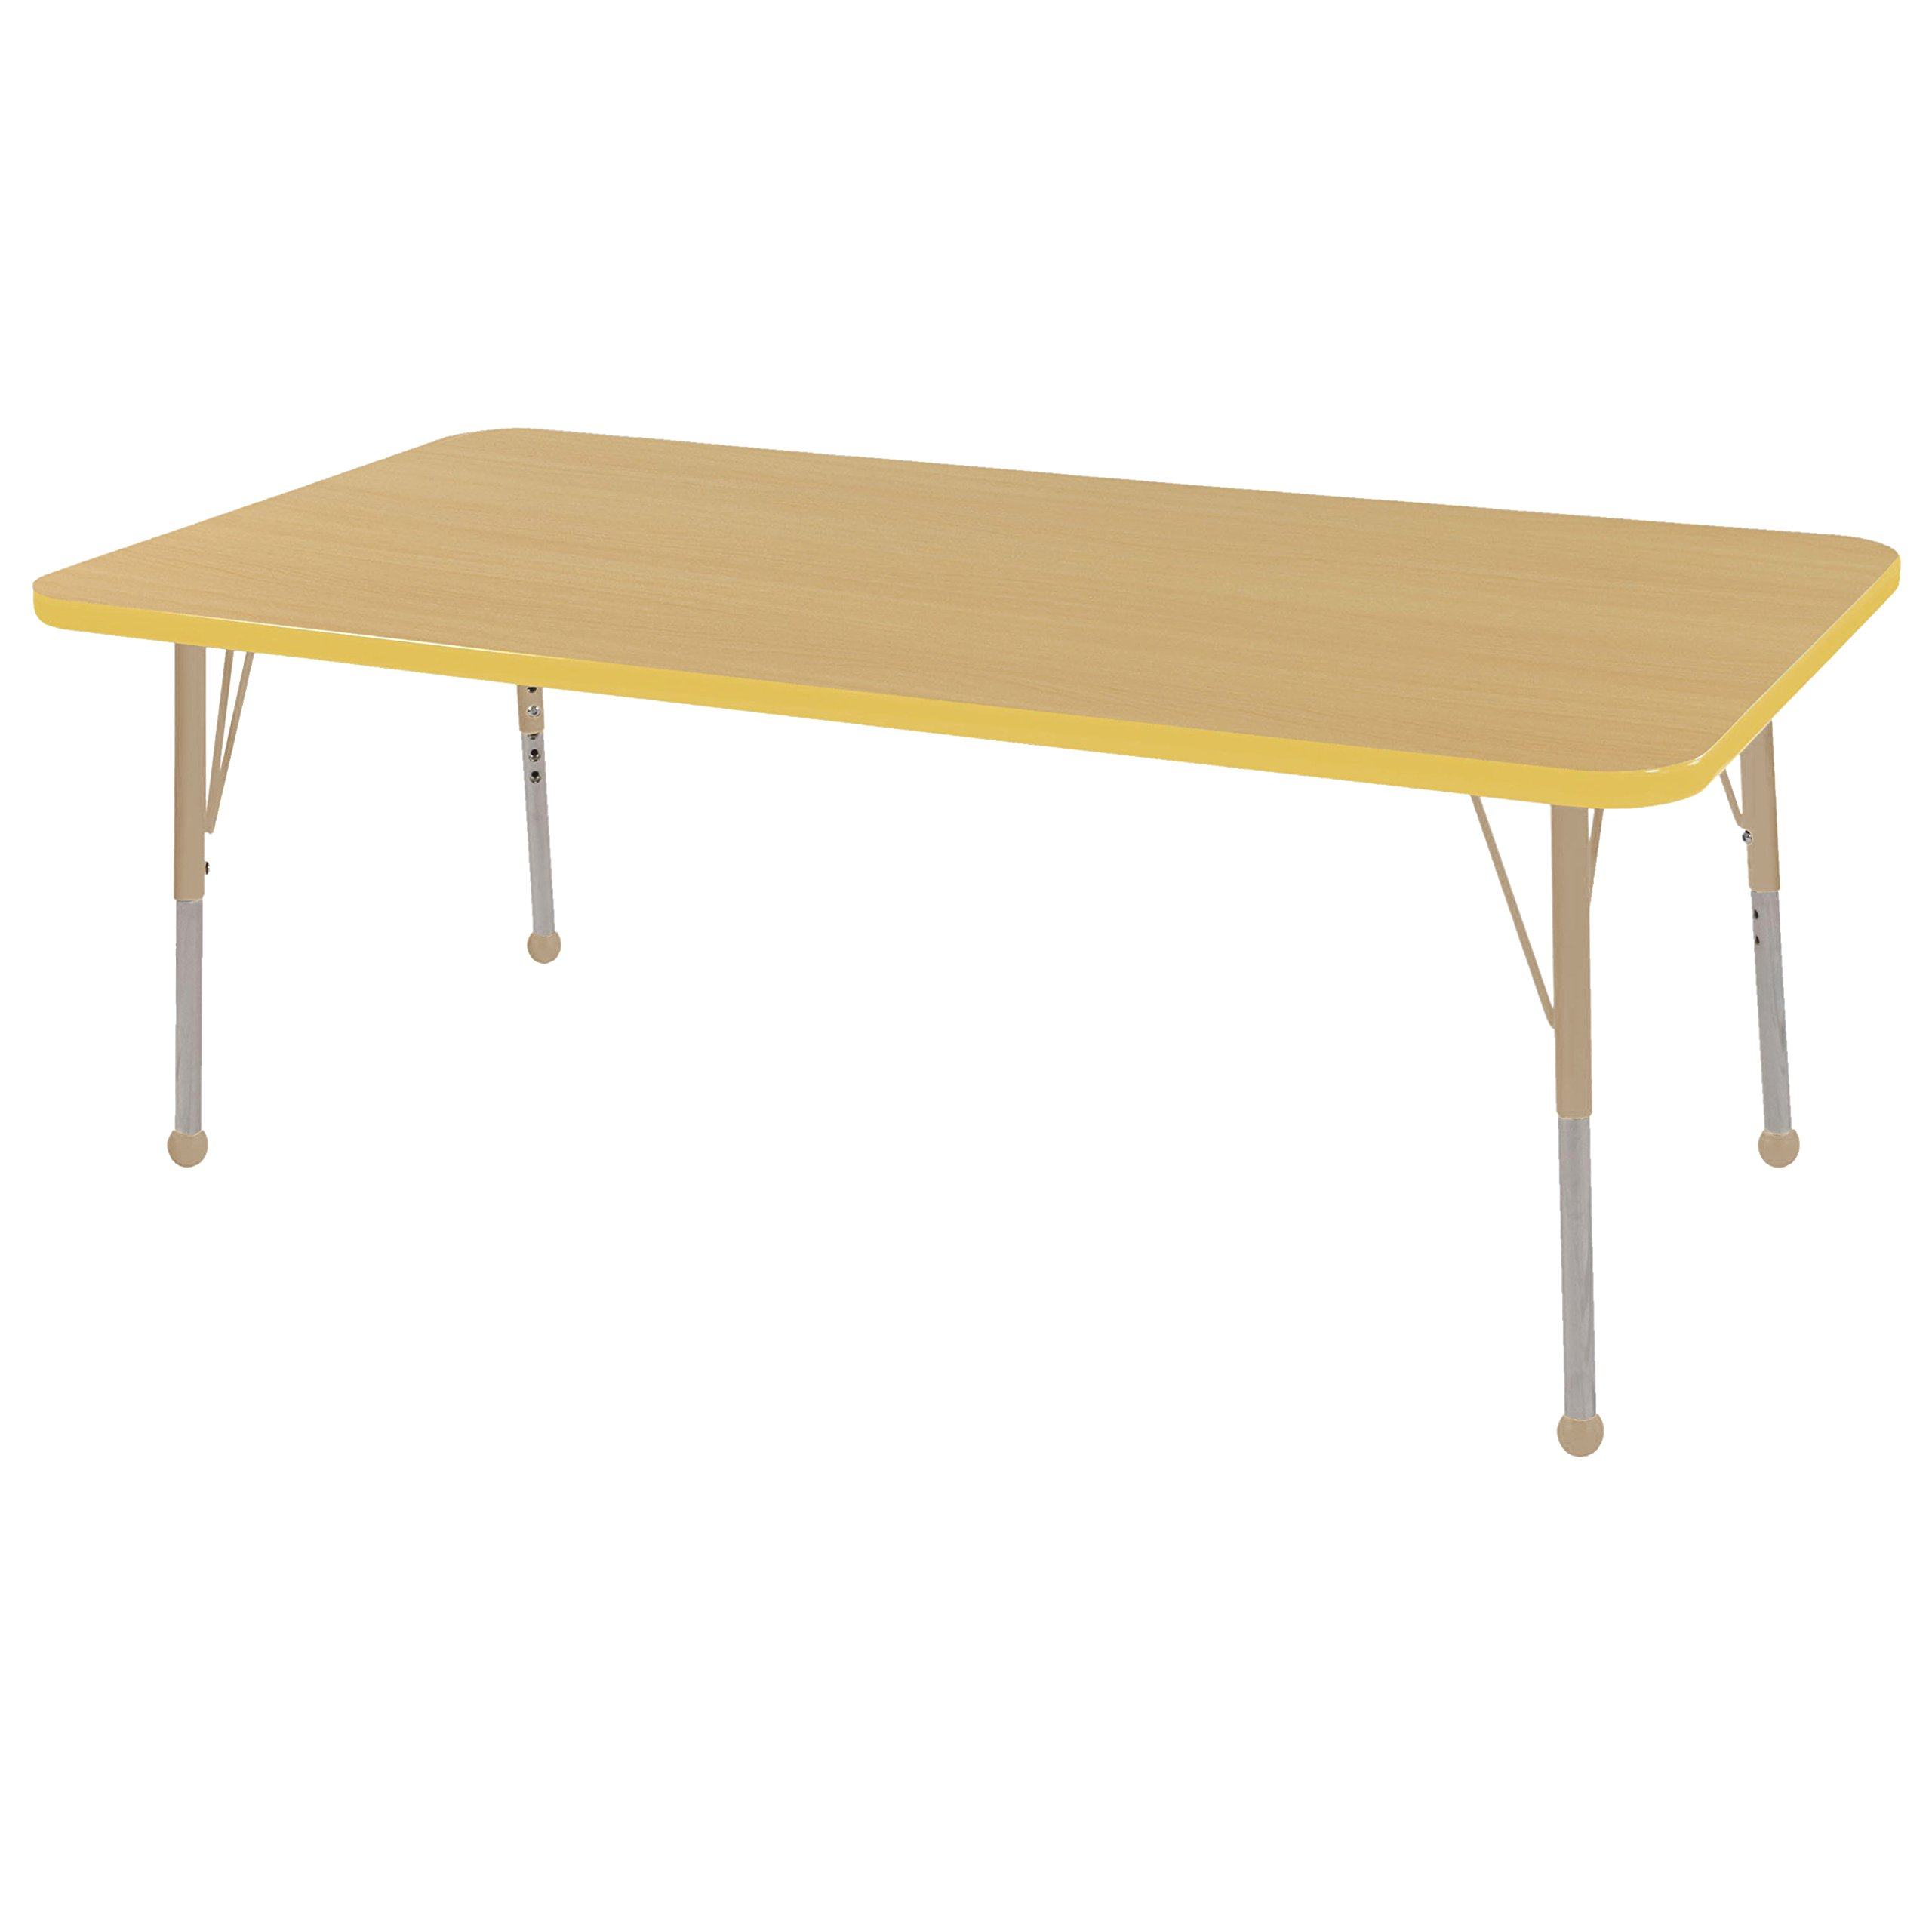 ECR4Kids Mesa T-Mold 30'' x 48'' Rectangular School Activity Table, Toddler Legs w/ Ball Glides, Adjustable Height 15-23 inch (Maple/Yellow/Sand)